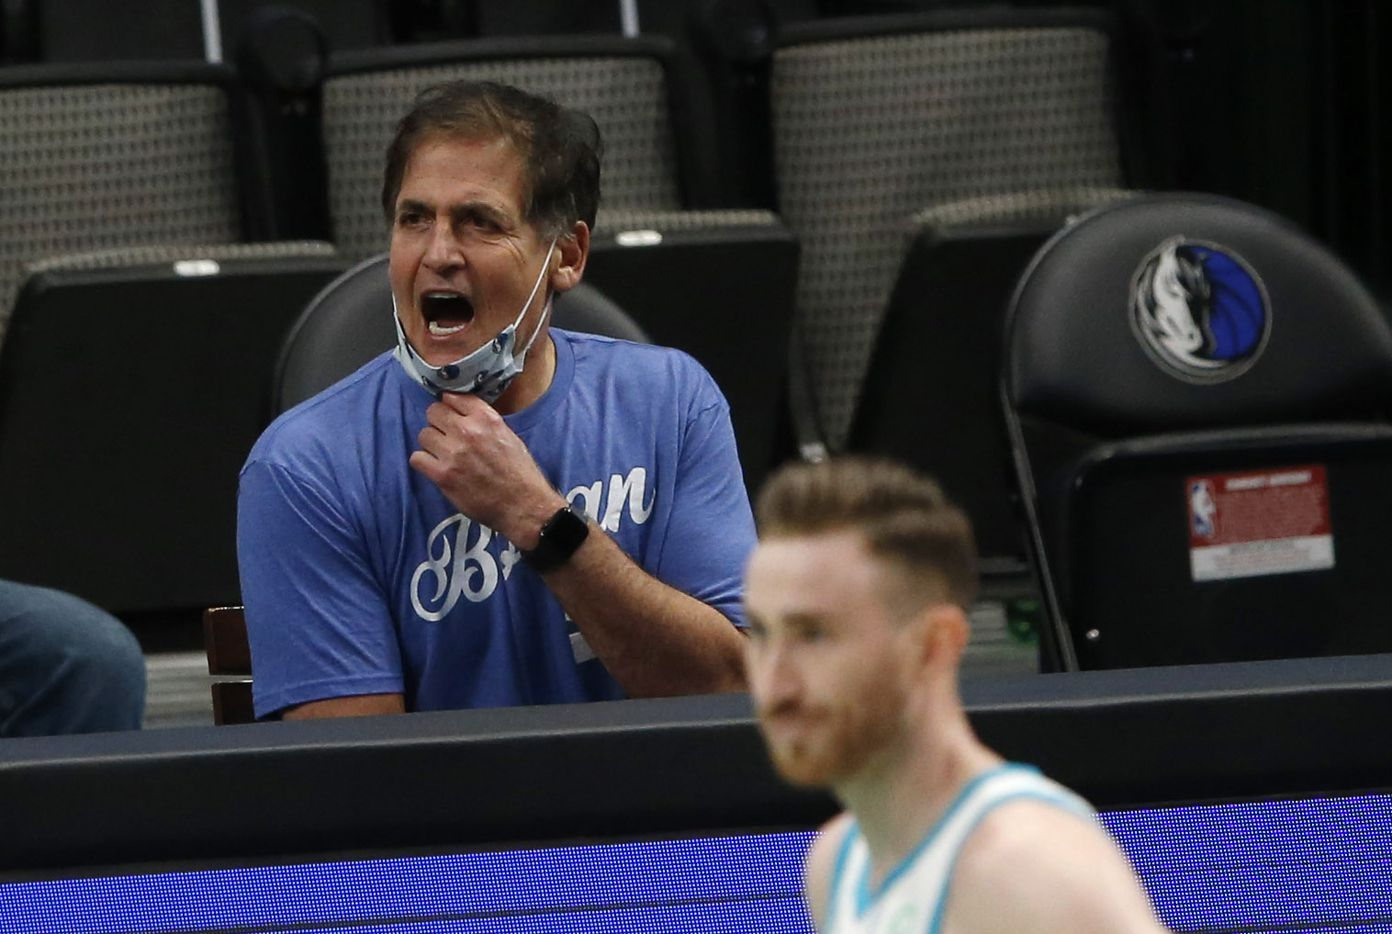 Dallas Mavericks owner Mark Cuban questions a call as they play the Charlotte Hornets during the third quarter of play in the home opener at American Airlines Center on Wednesday, December 30, 2020 in Dallas. (Vernon Bryant/The Dallas Morning News)